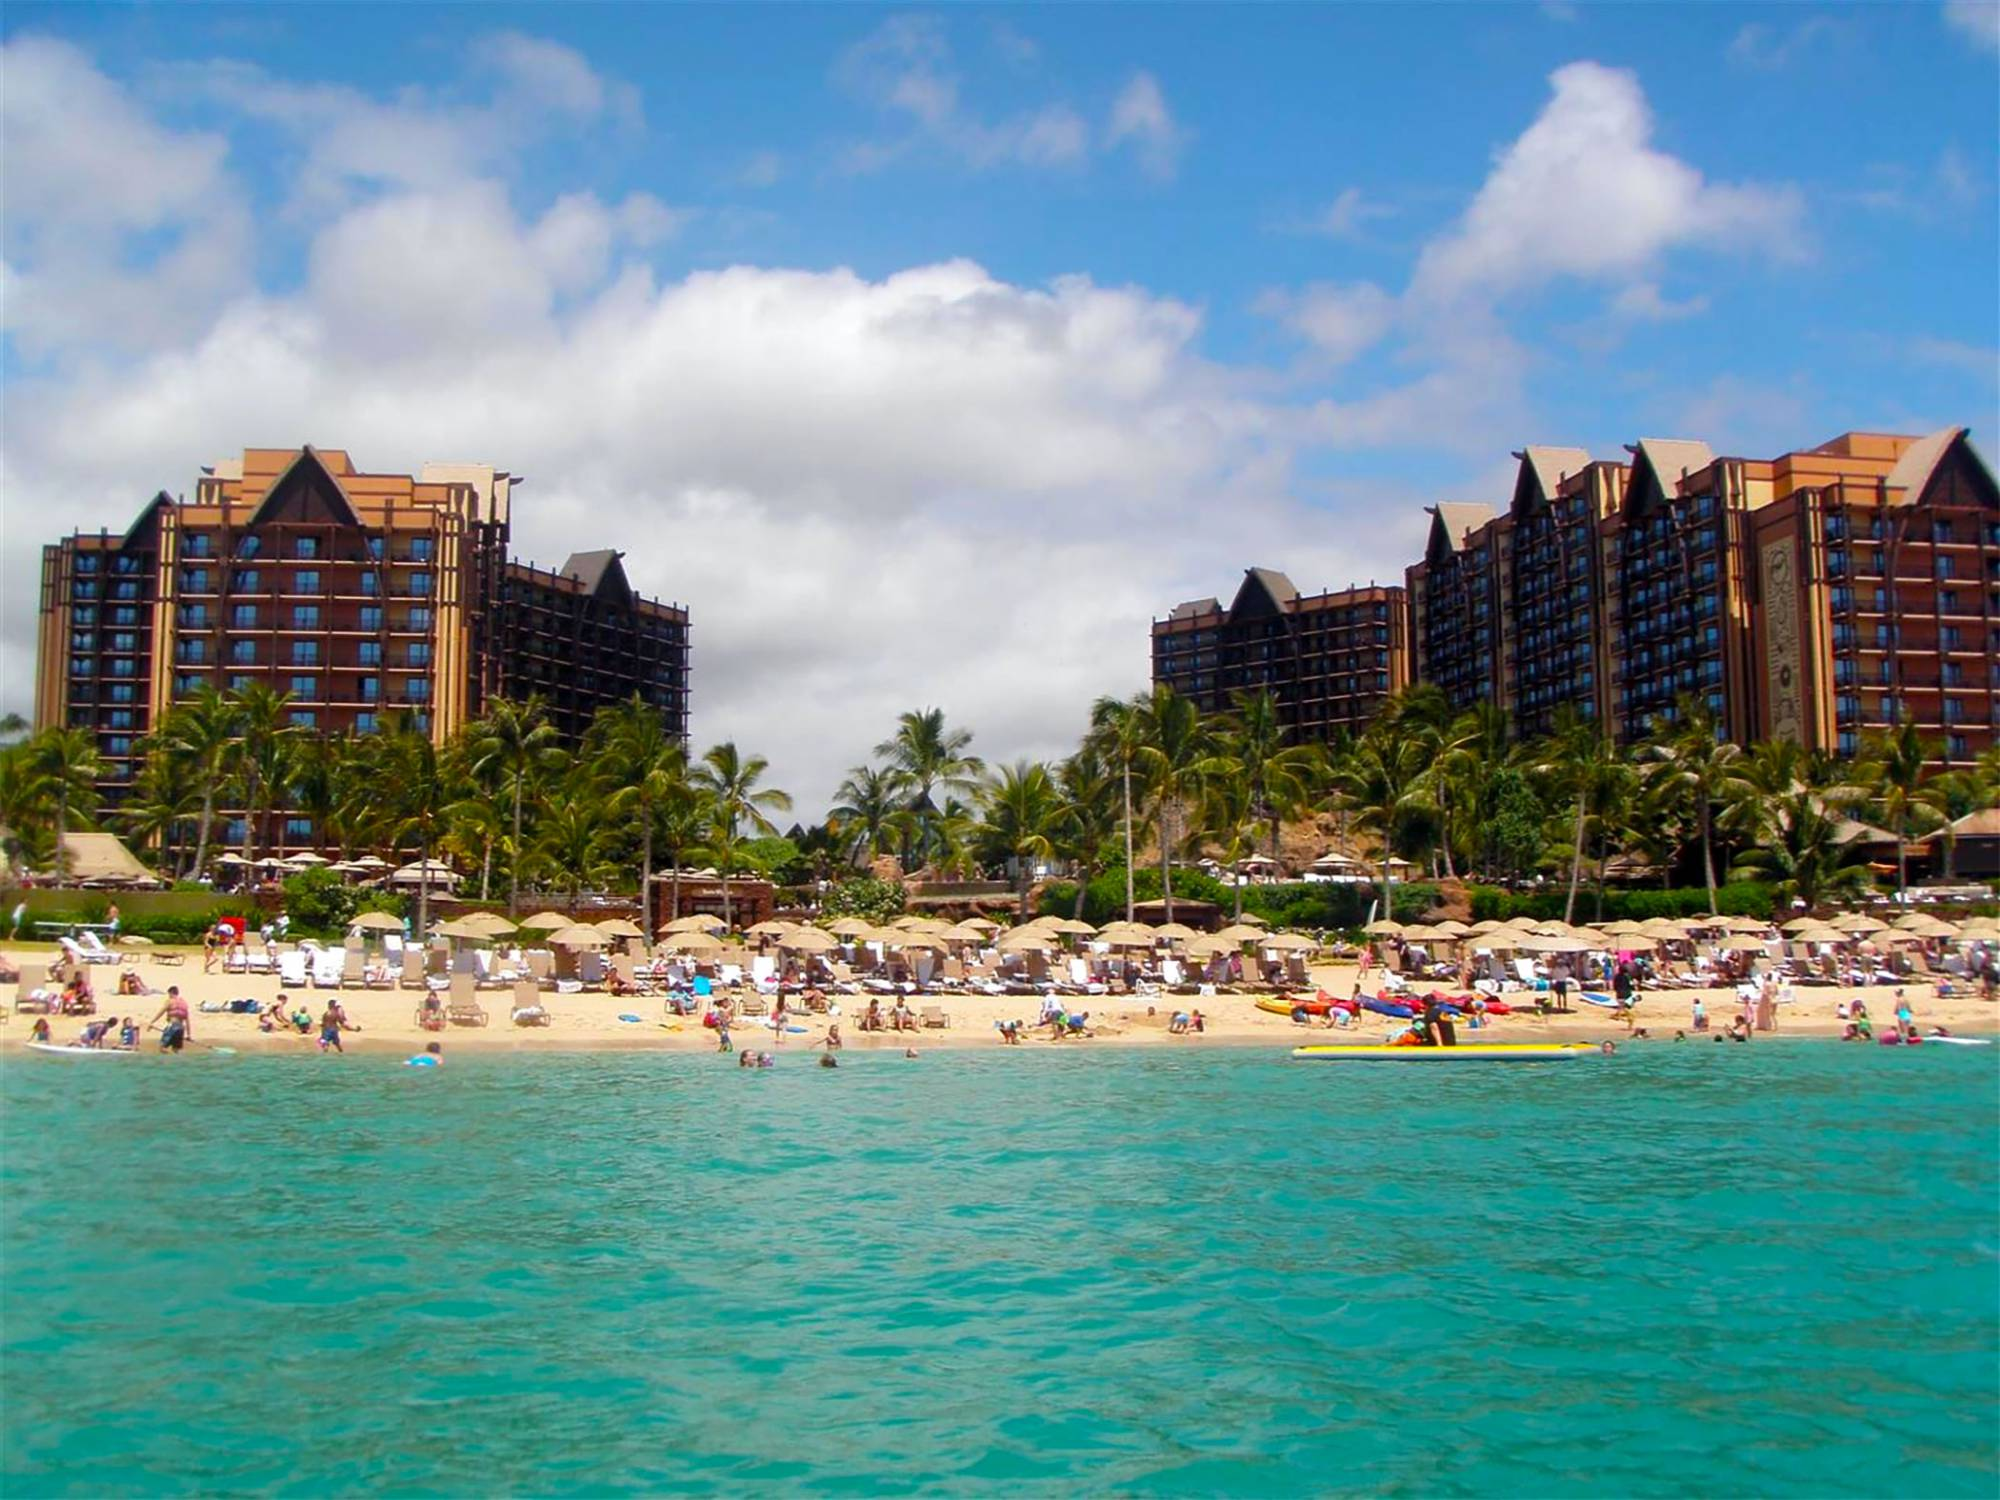 Aulani: A Disney Resort and Spa